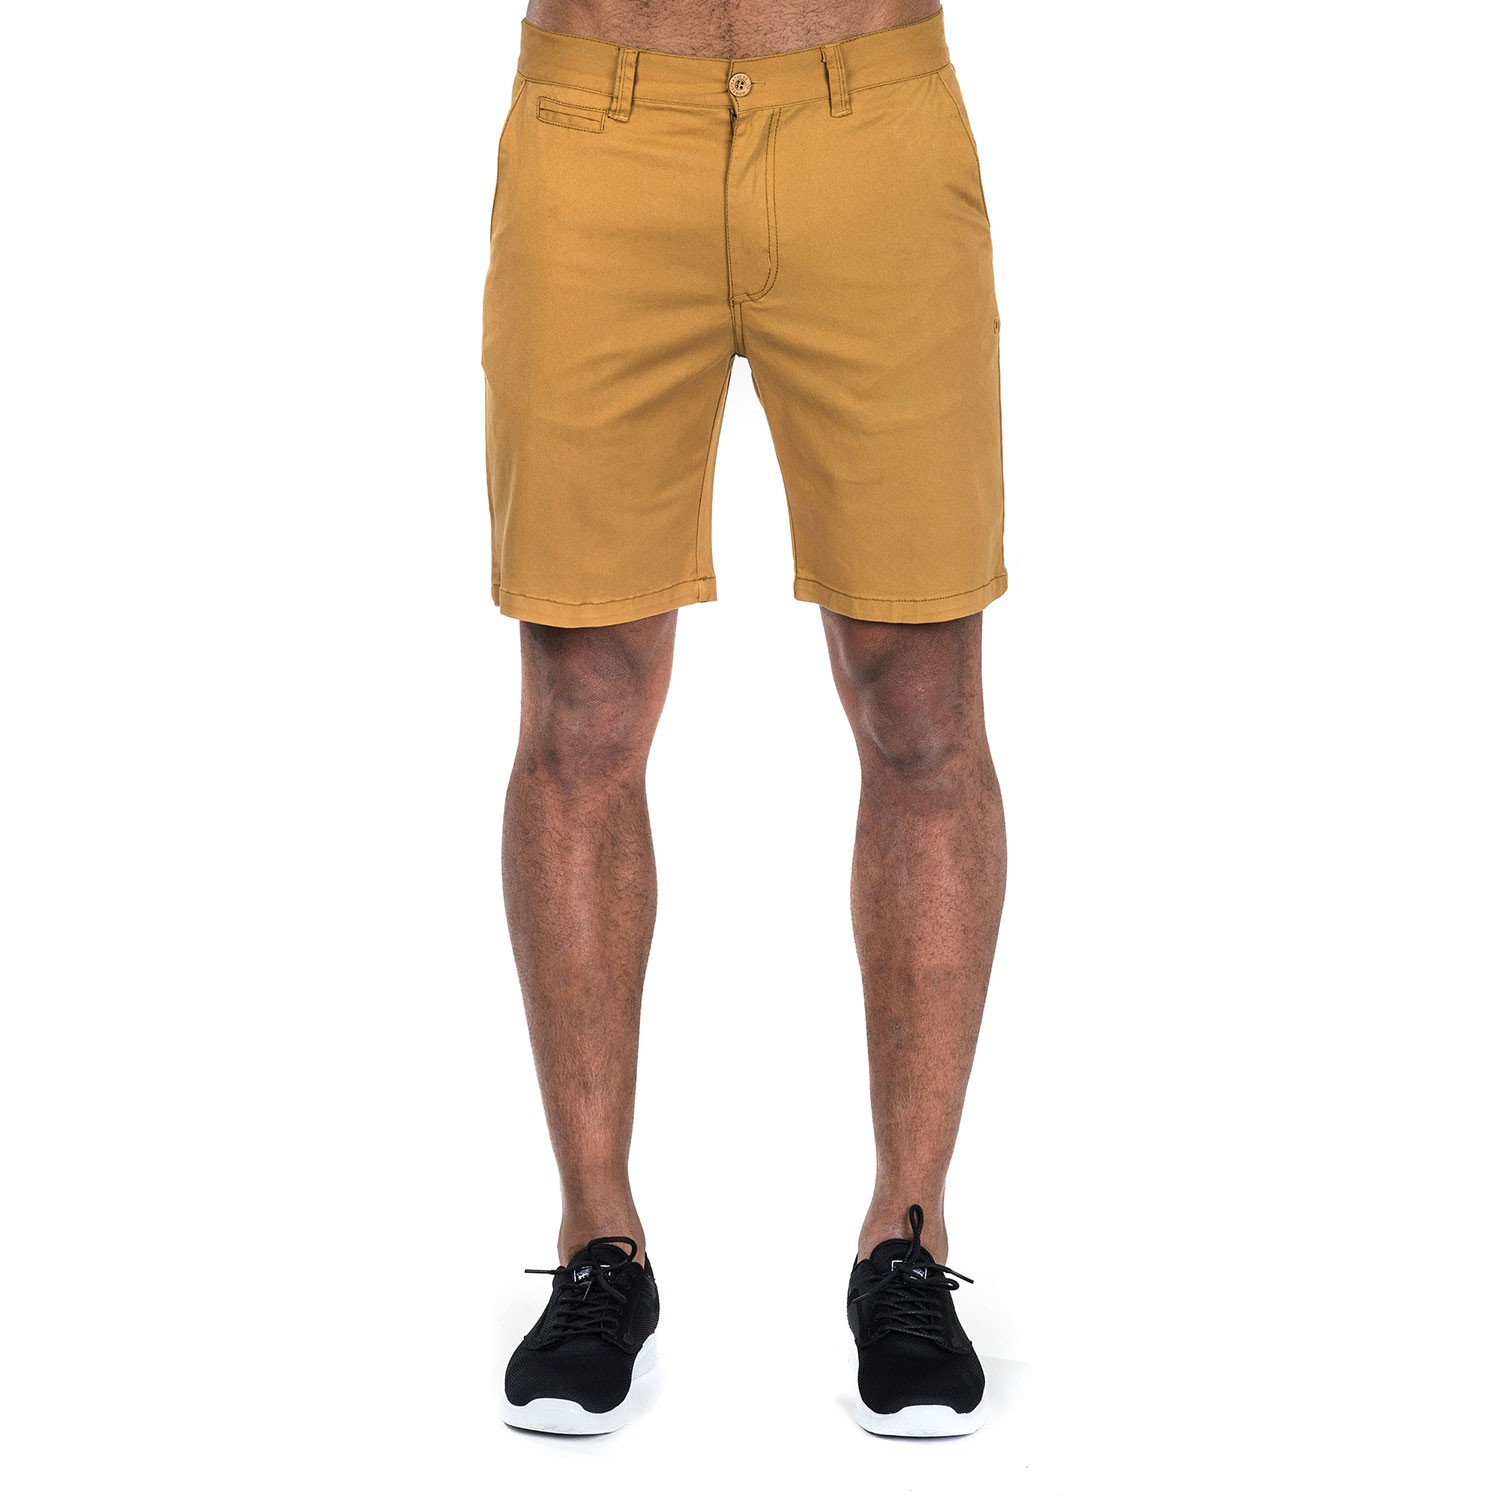 Kraťasy Horsefeathers Ritchie Shorts sand